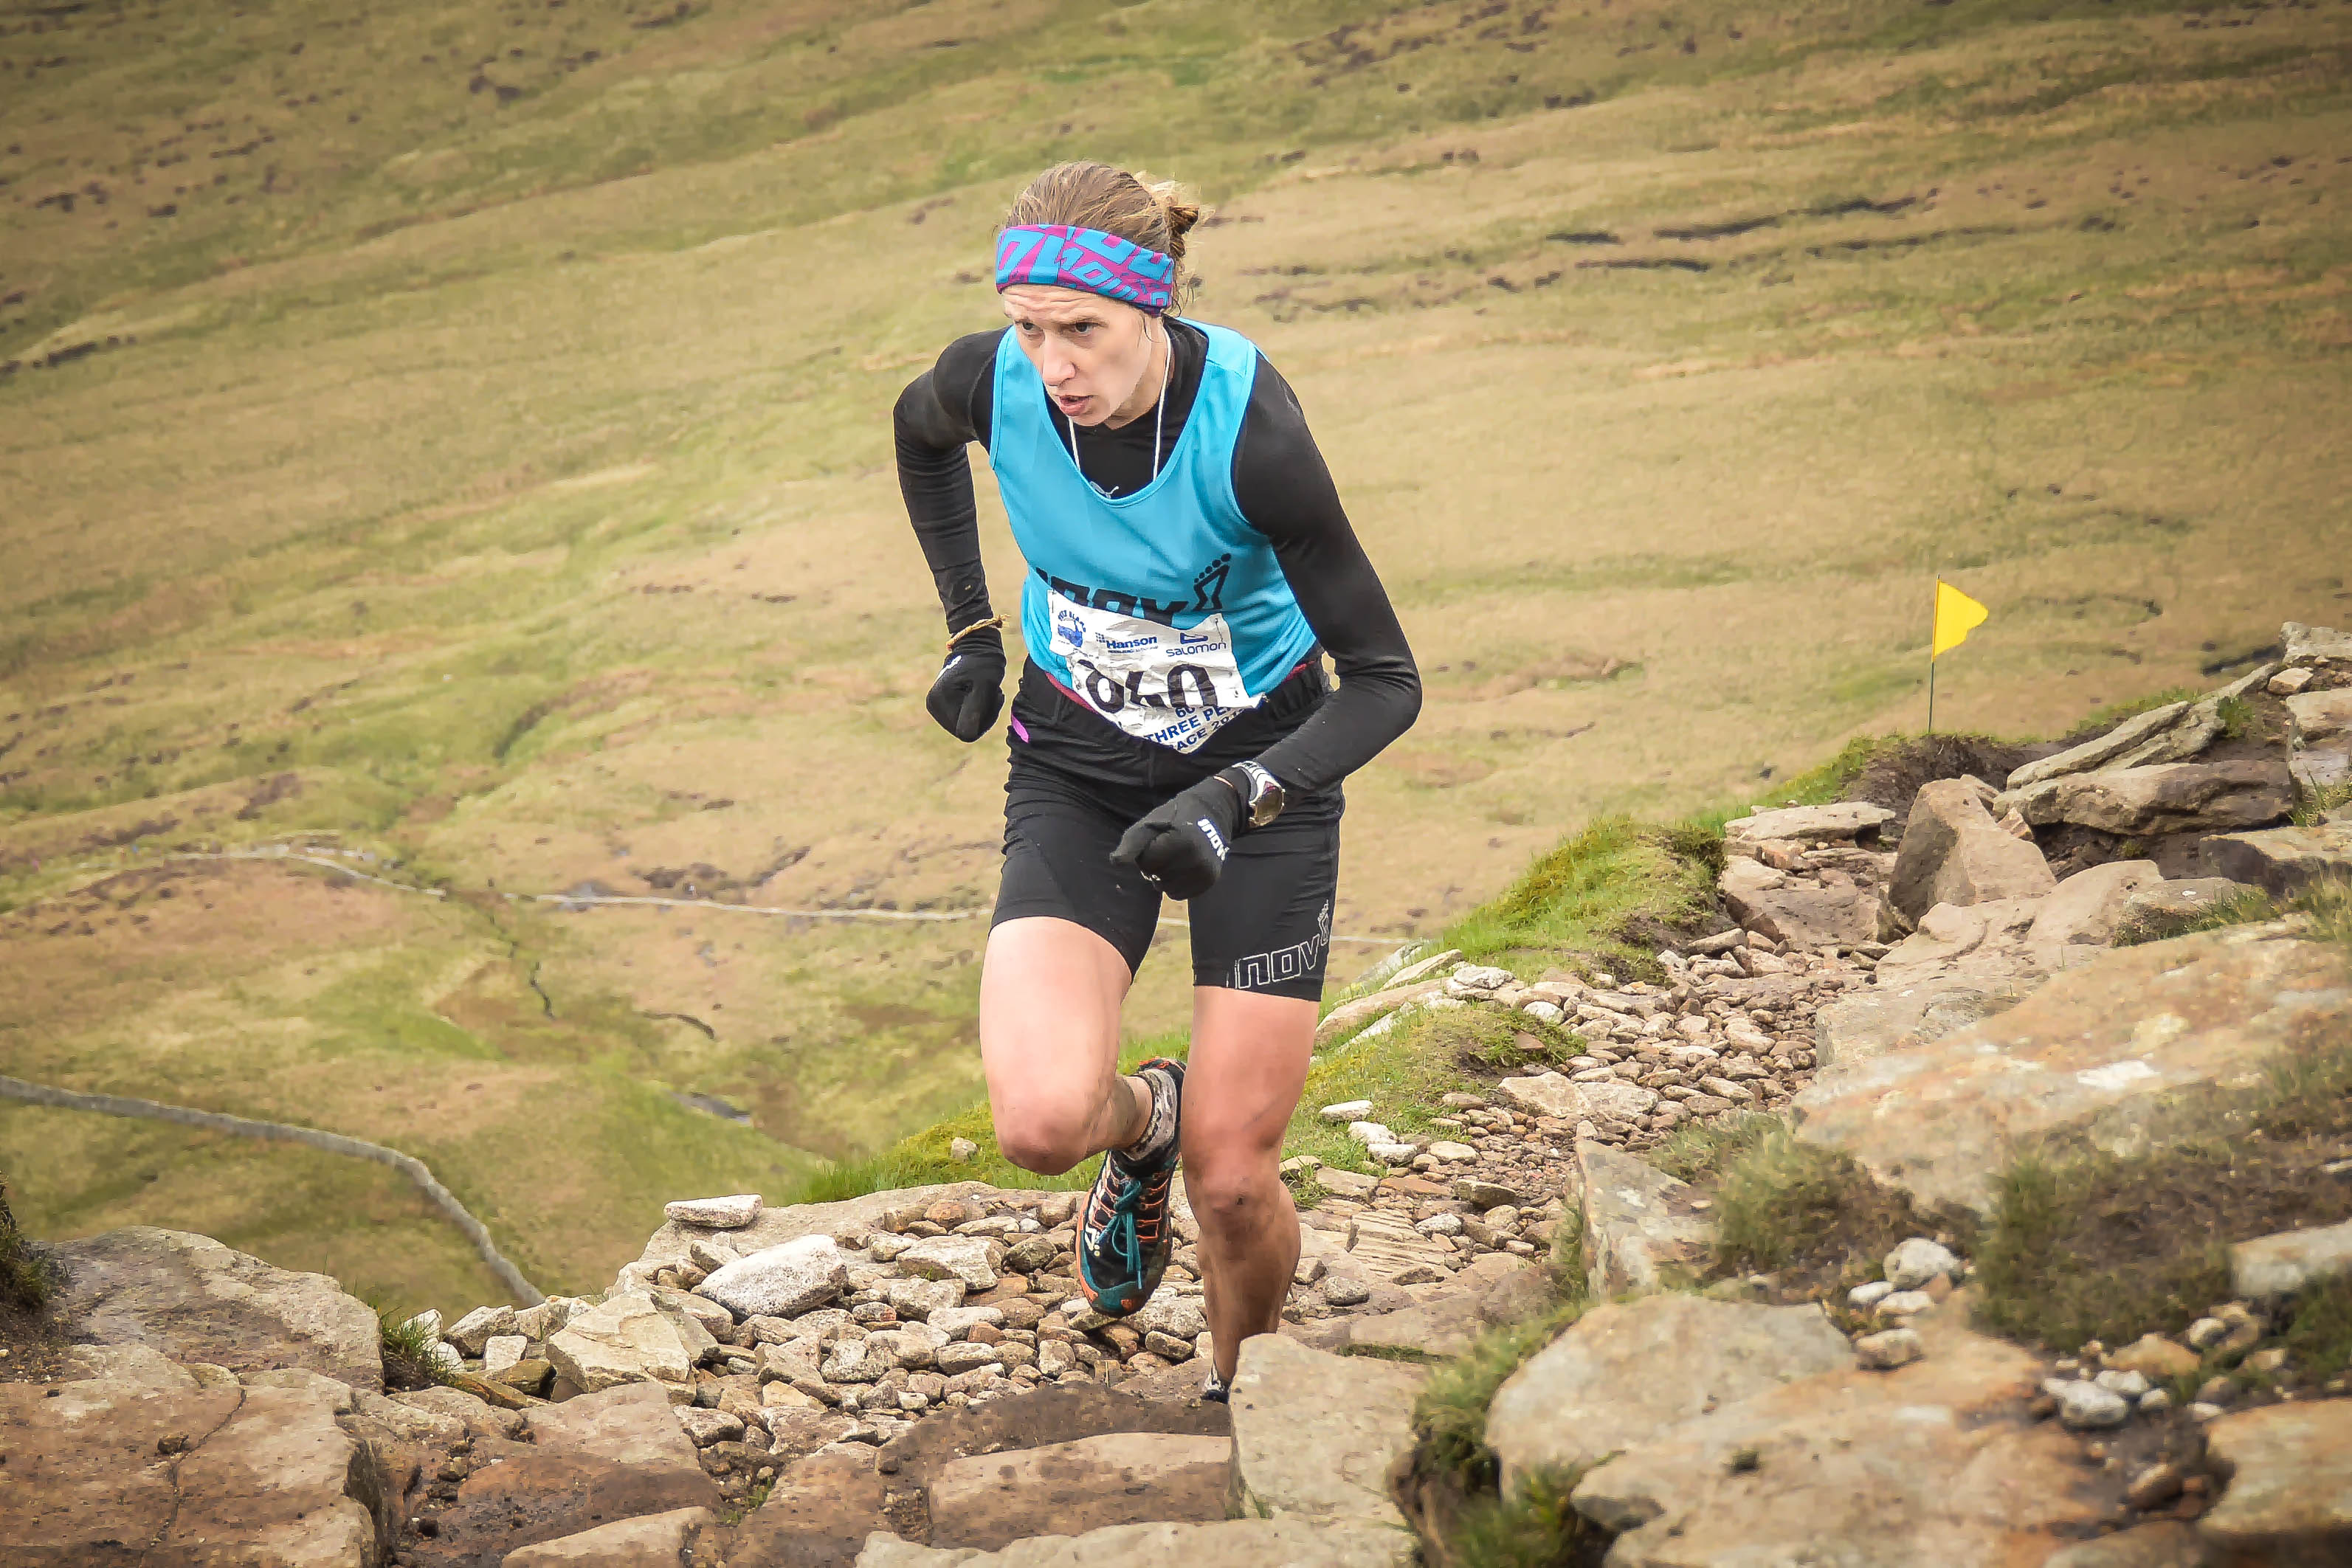 Victoria on her way to victory at the Three Peaks Race. Photo by www.racingsnakes.com